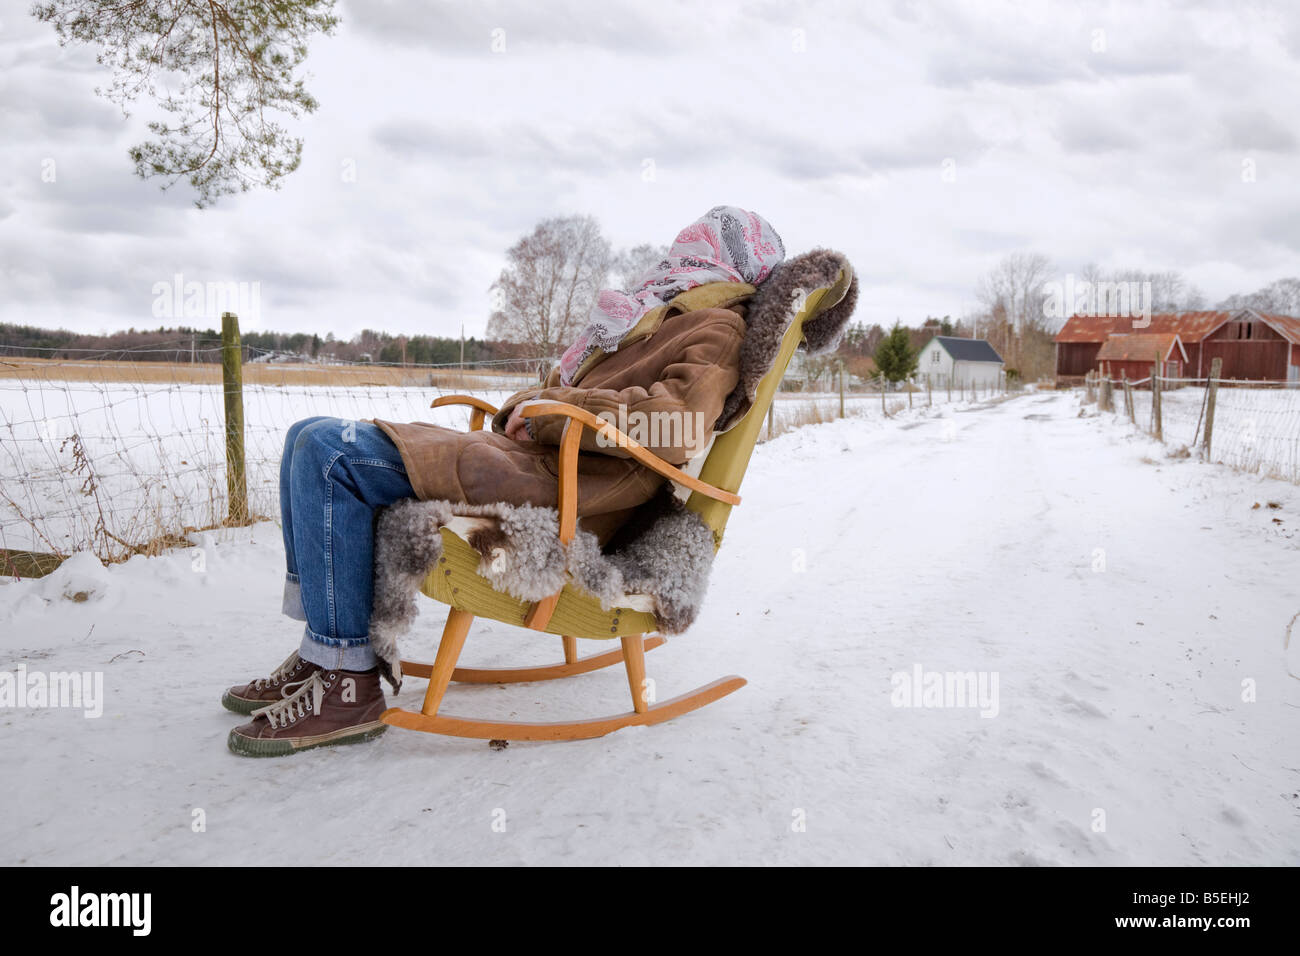 A man sitting in a sheepskin covered rocking chair in a country lane with a hippie type scarf covering his face - Stock Image